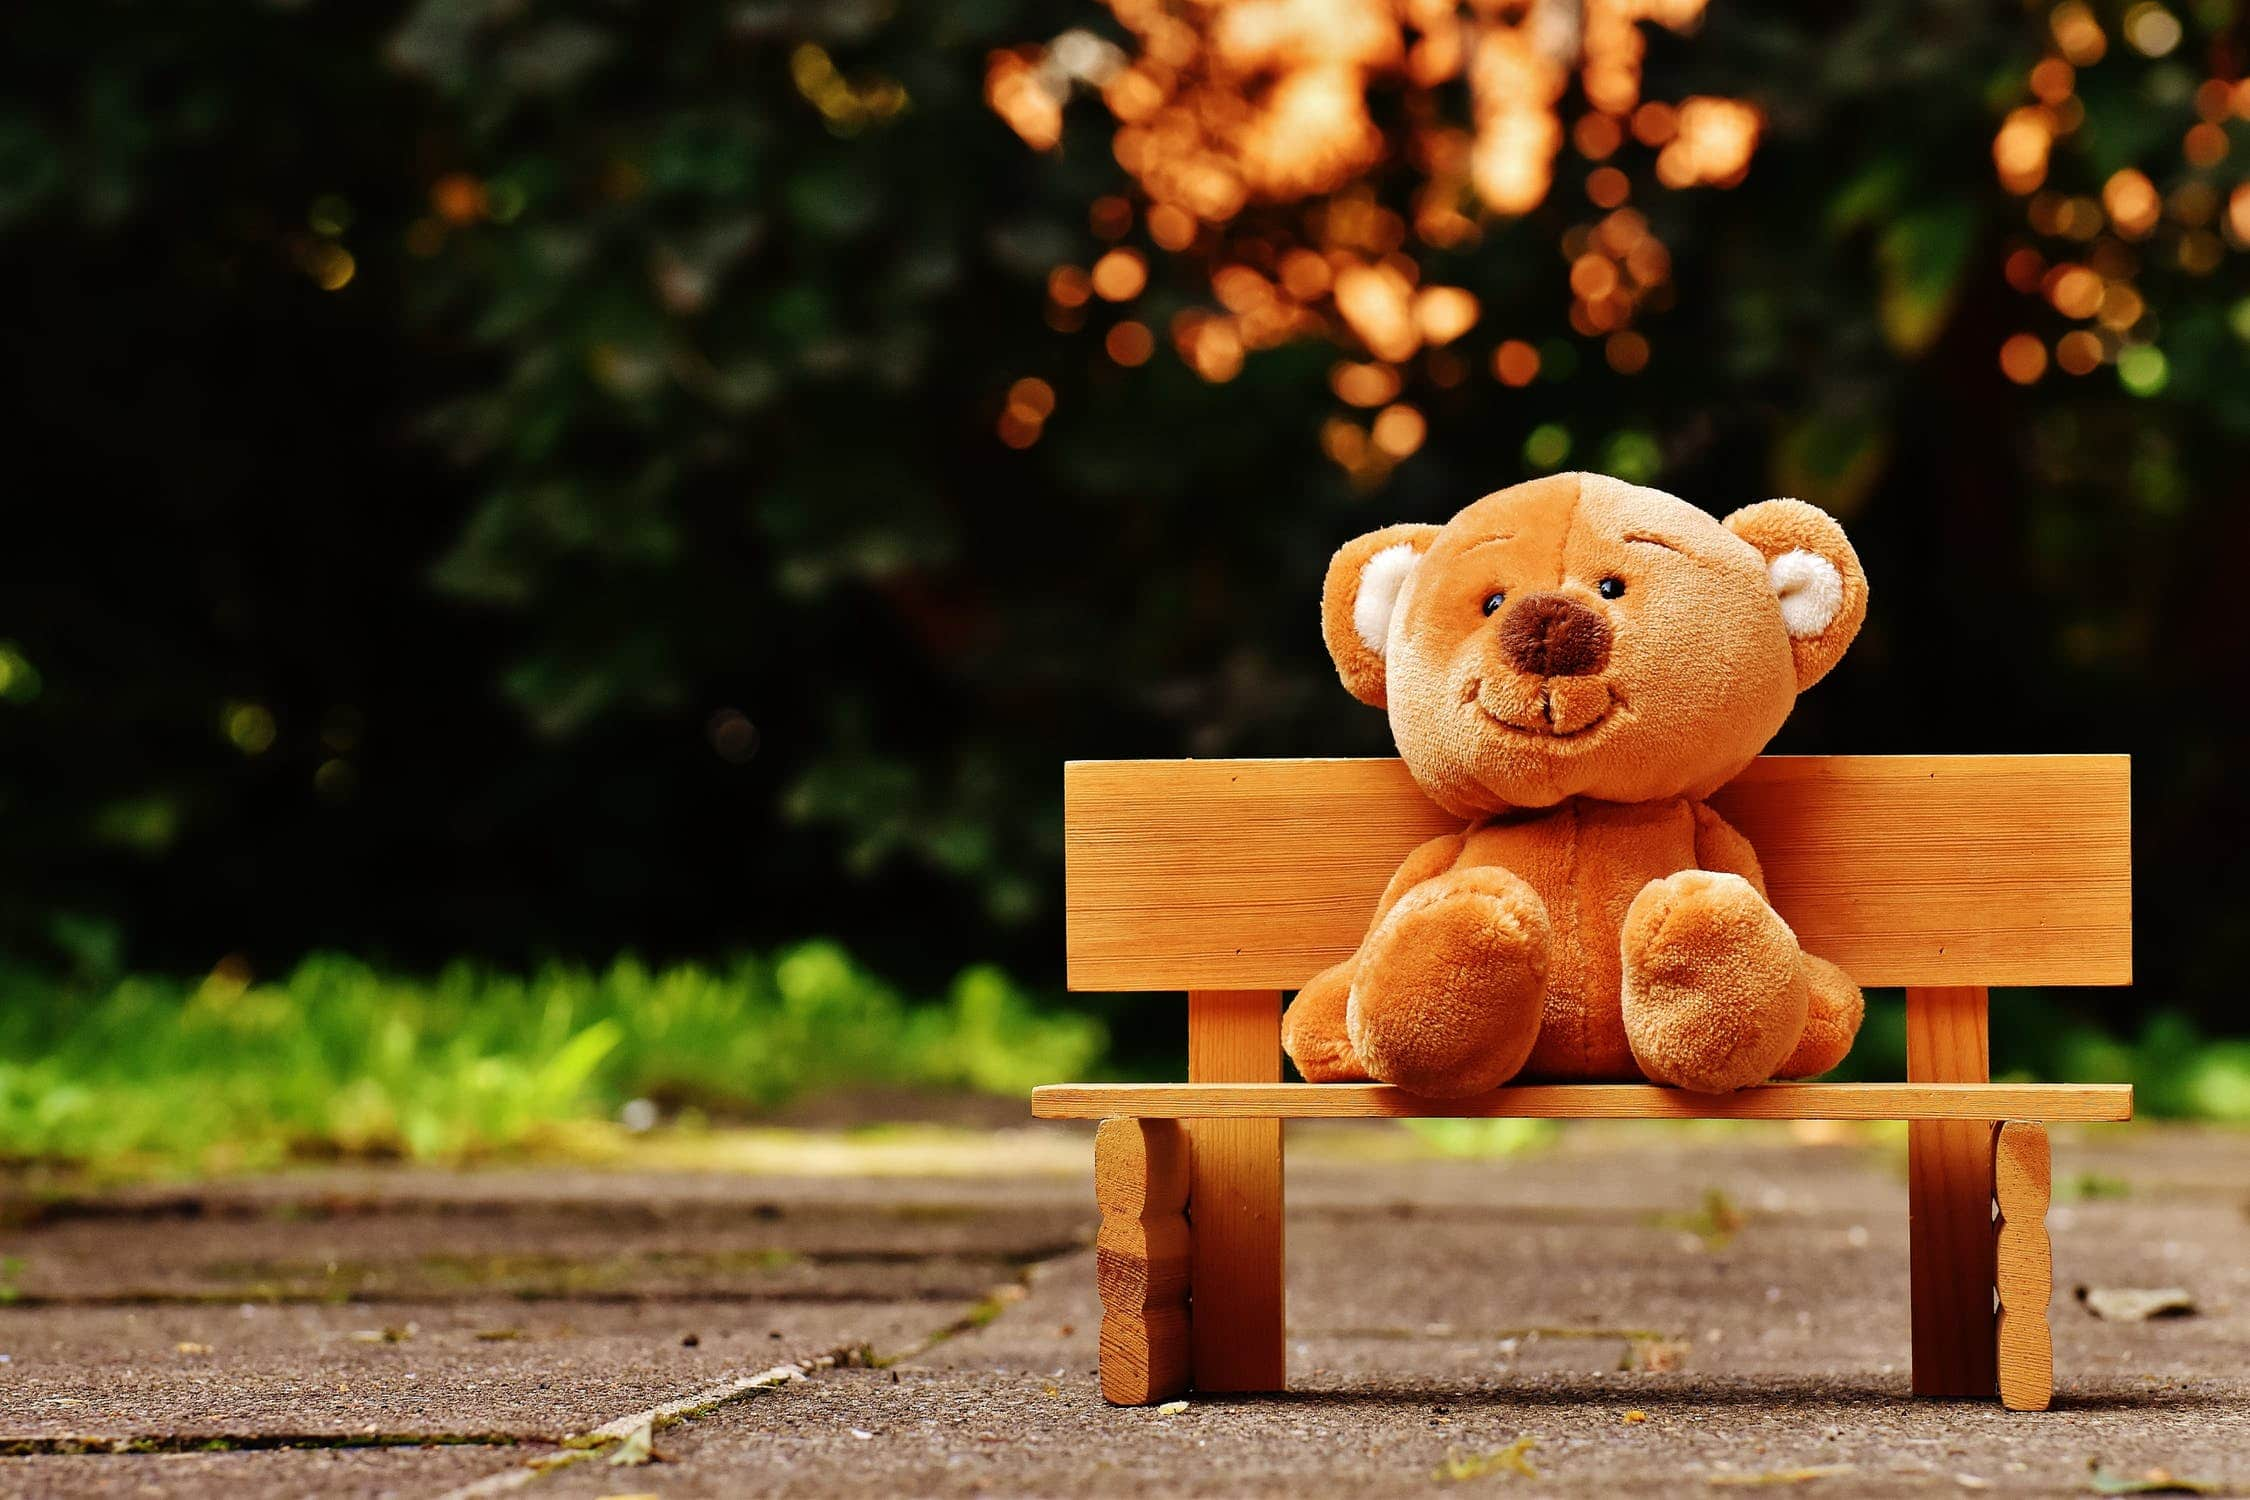 Wooden bench with a teddy bear sat on it